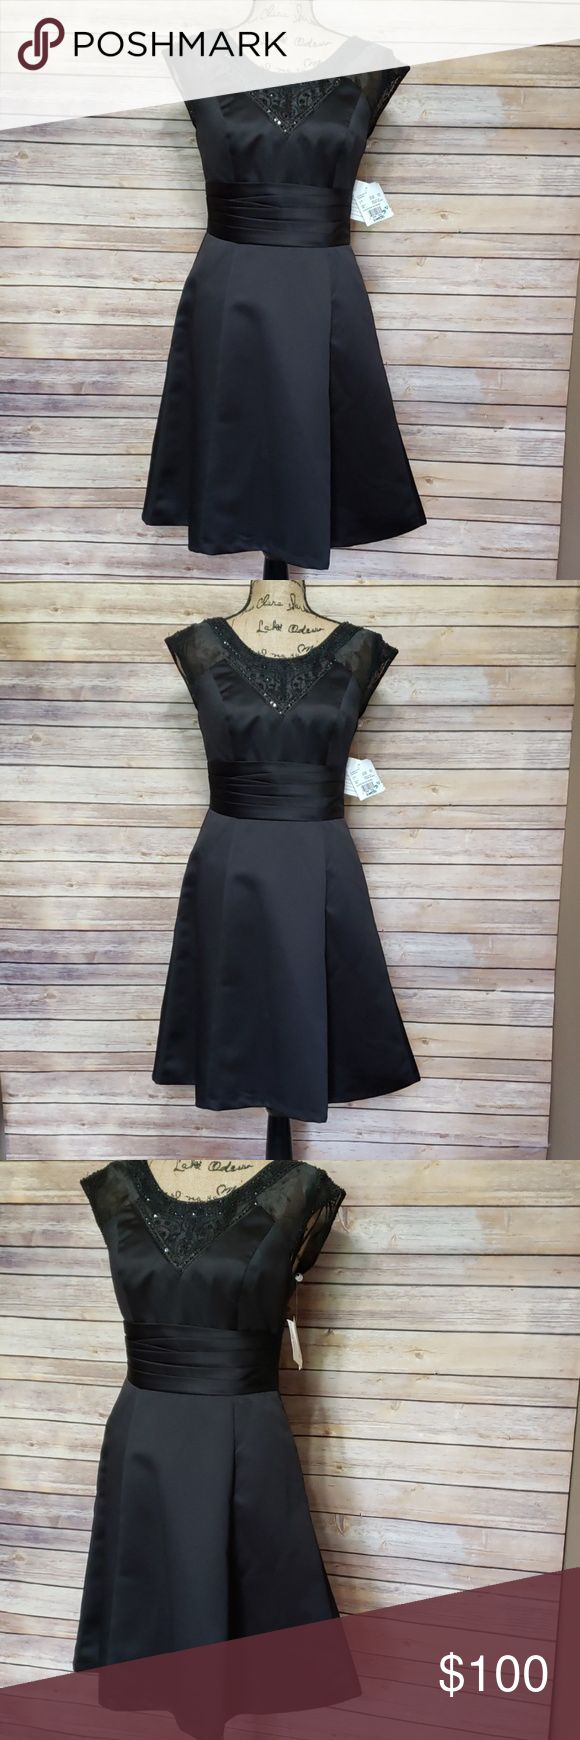 David's Bridal Satin Classic Style formal Dress This black dress is a size 4... 3